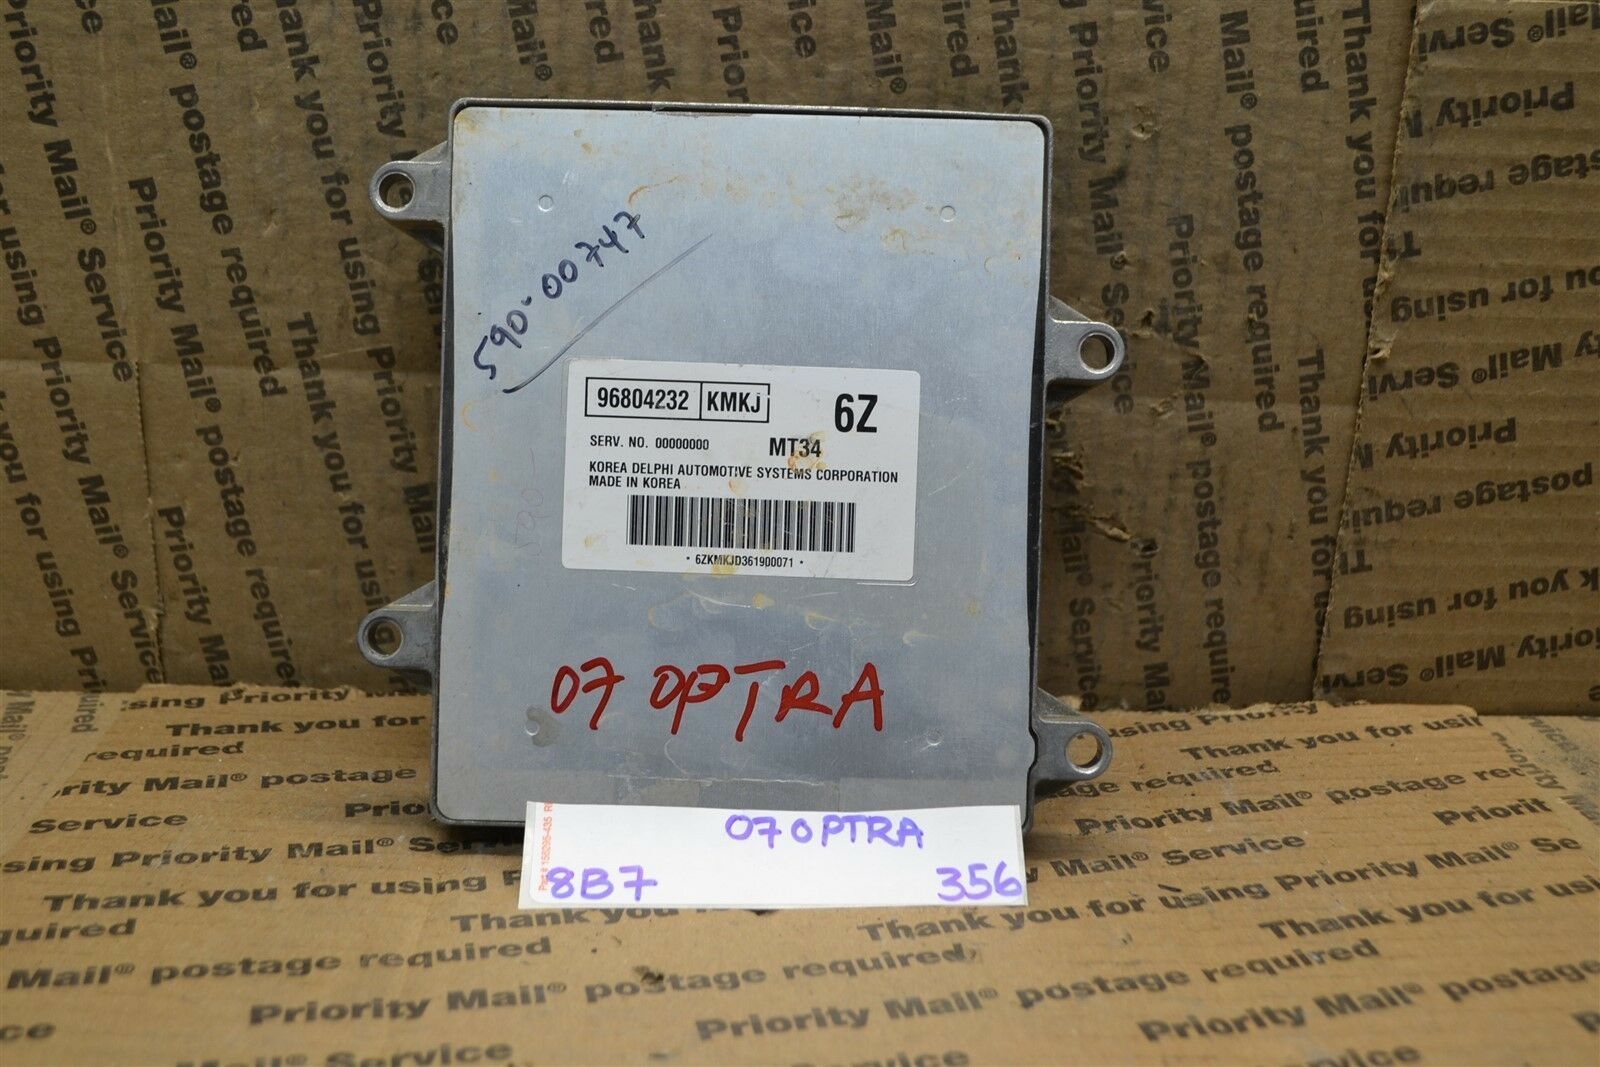 Primary image for 2007 Chevrolet Optra Engine Control Unit ECU 96804232 Module 356-8B7